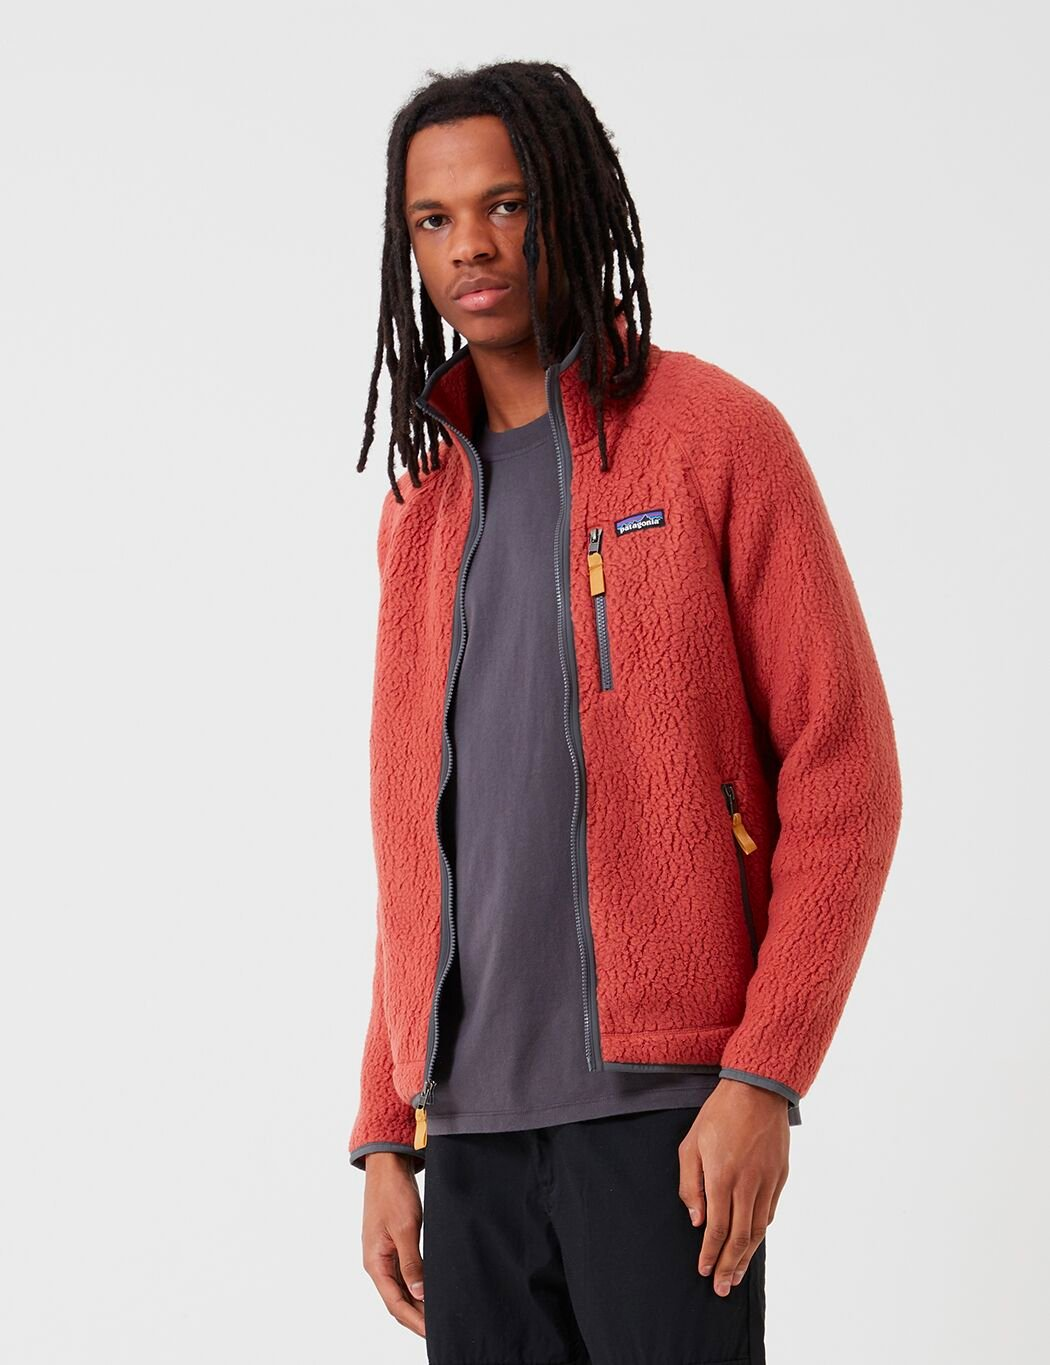 Patagonia Retro Pile Jacke - Spanisch Red